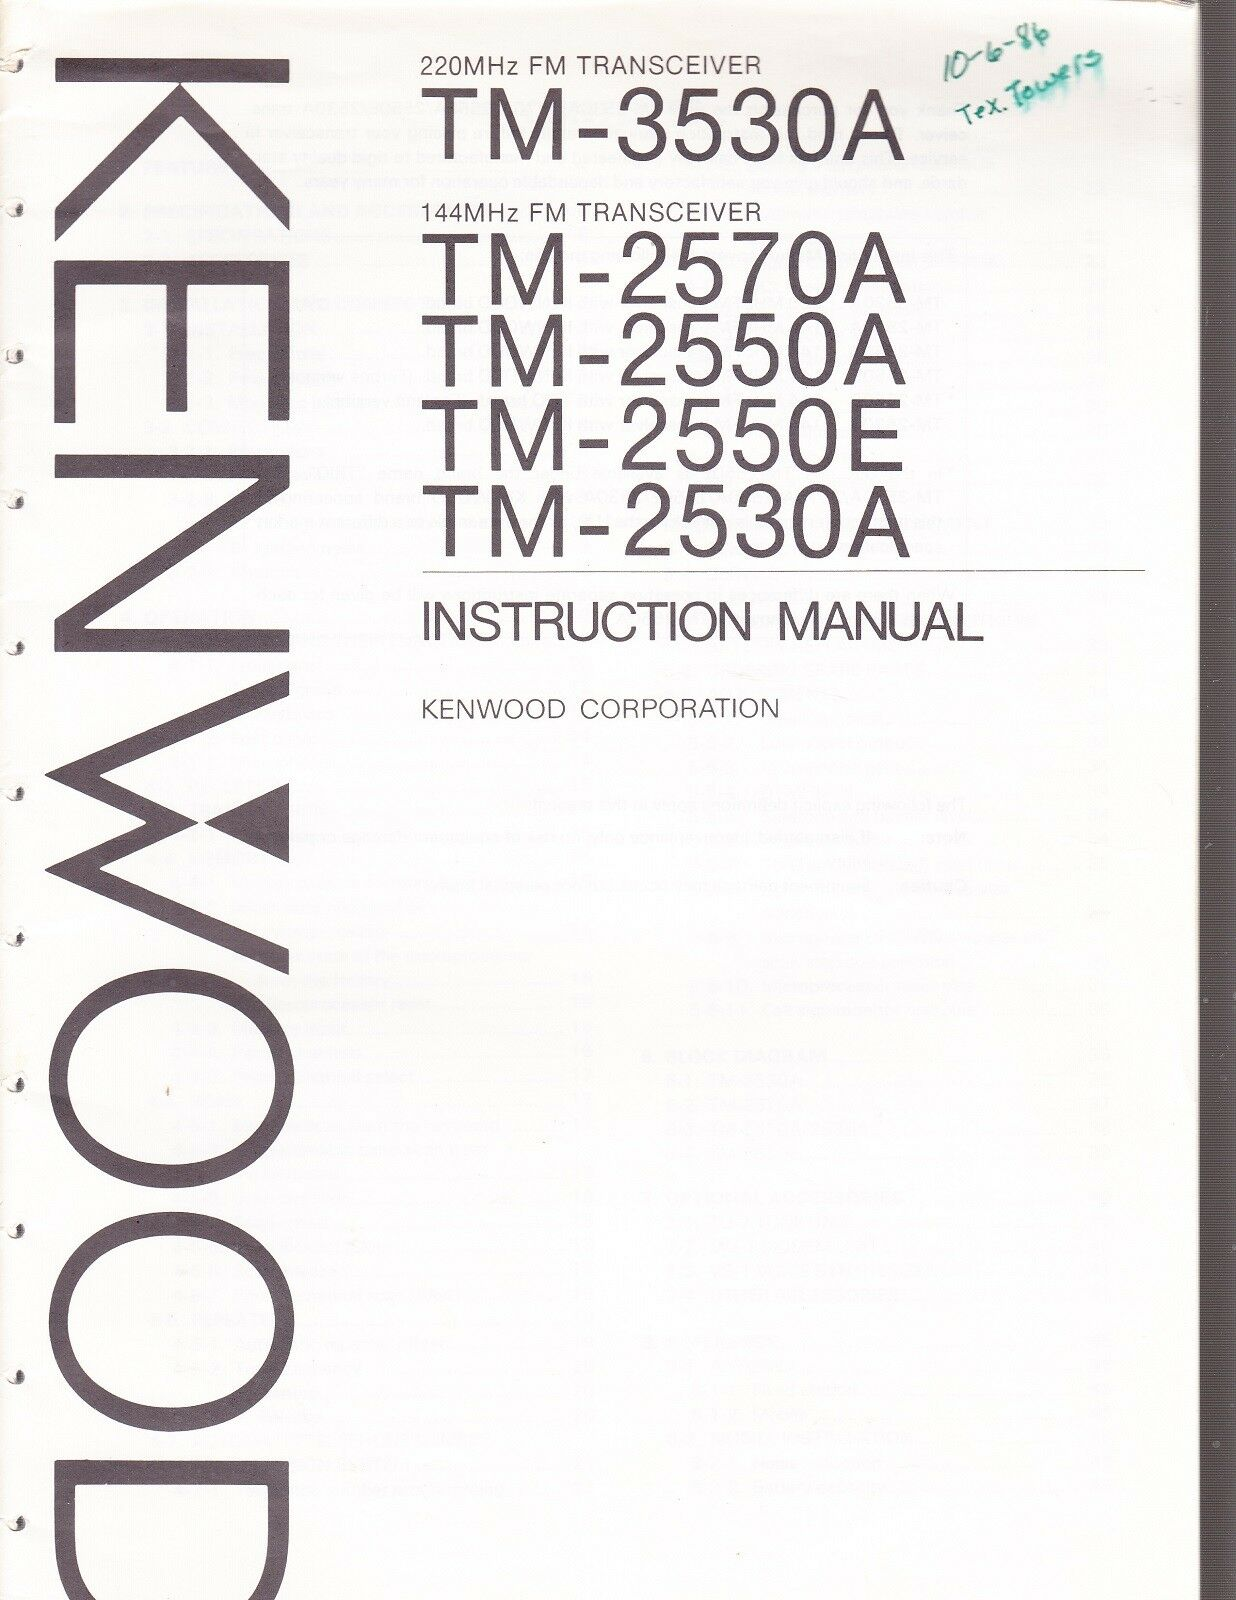 KENWOOD INSTRUCTION MANUAL for a MODEL TM-3530A 220 MHz FM TRANSCEIVER 1 of  1Only 1 available ...